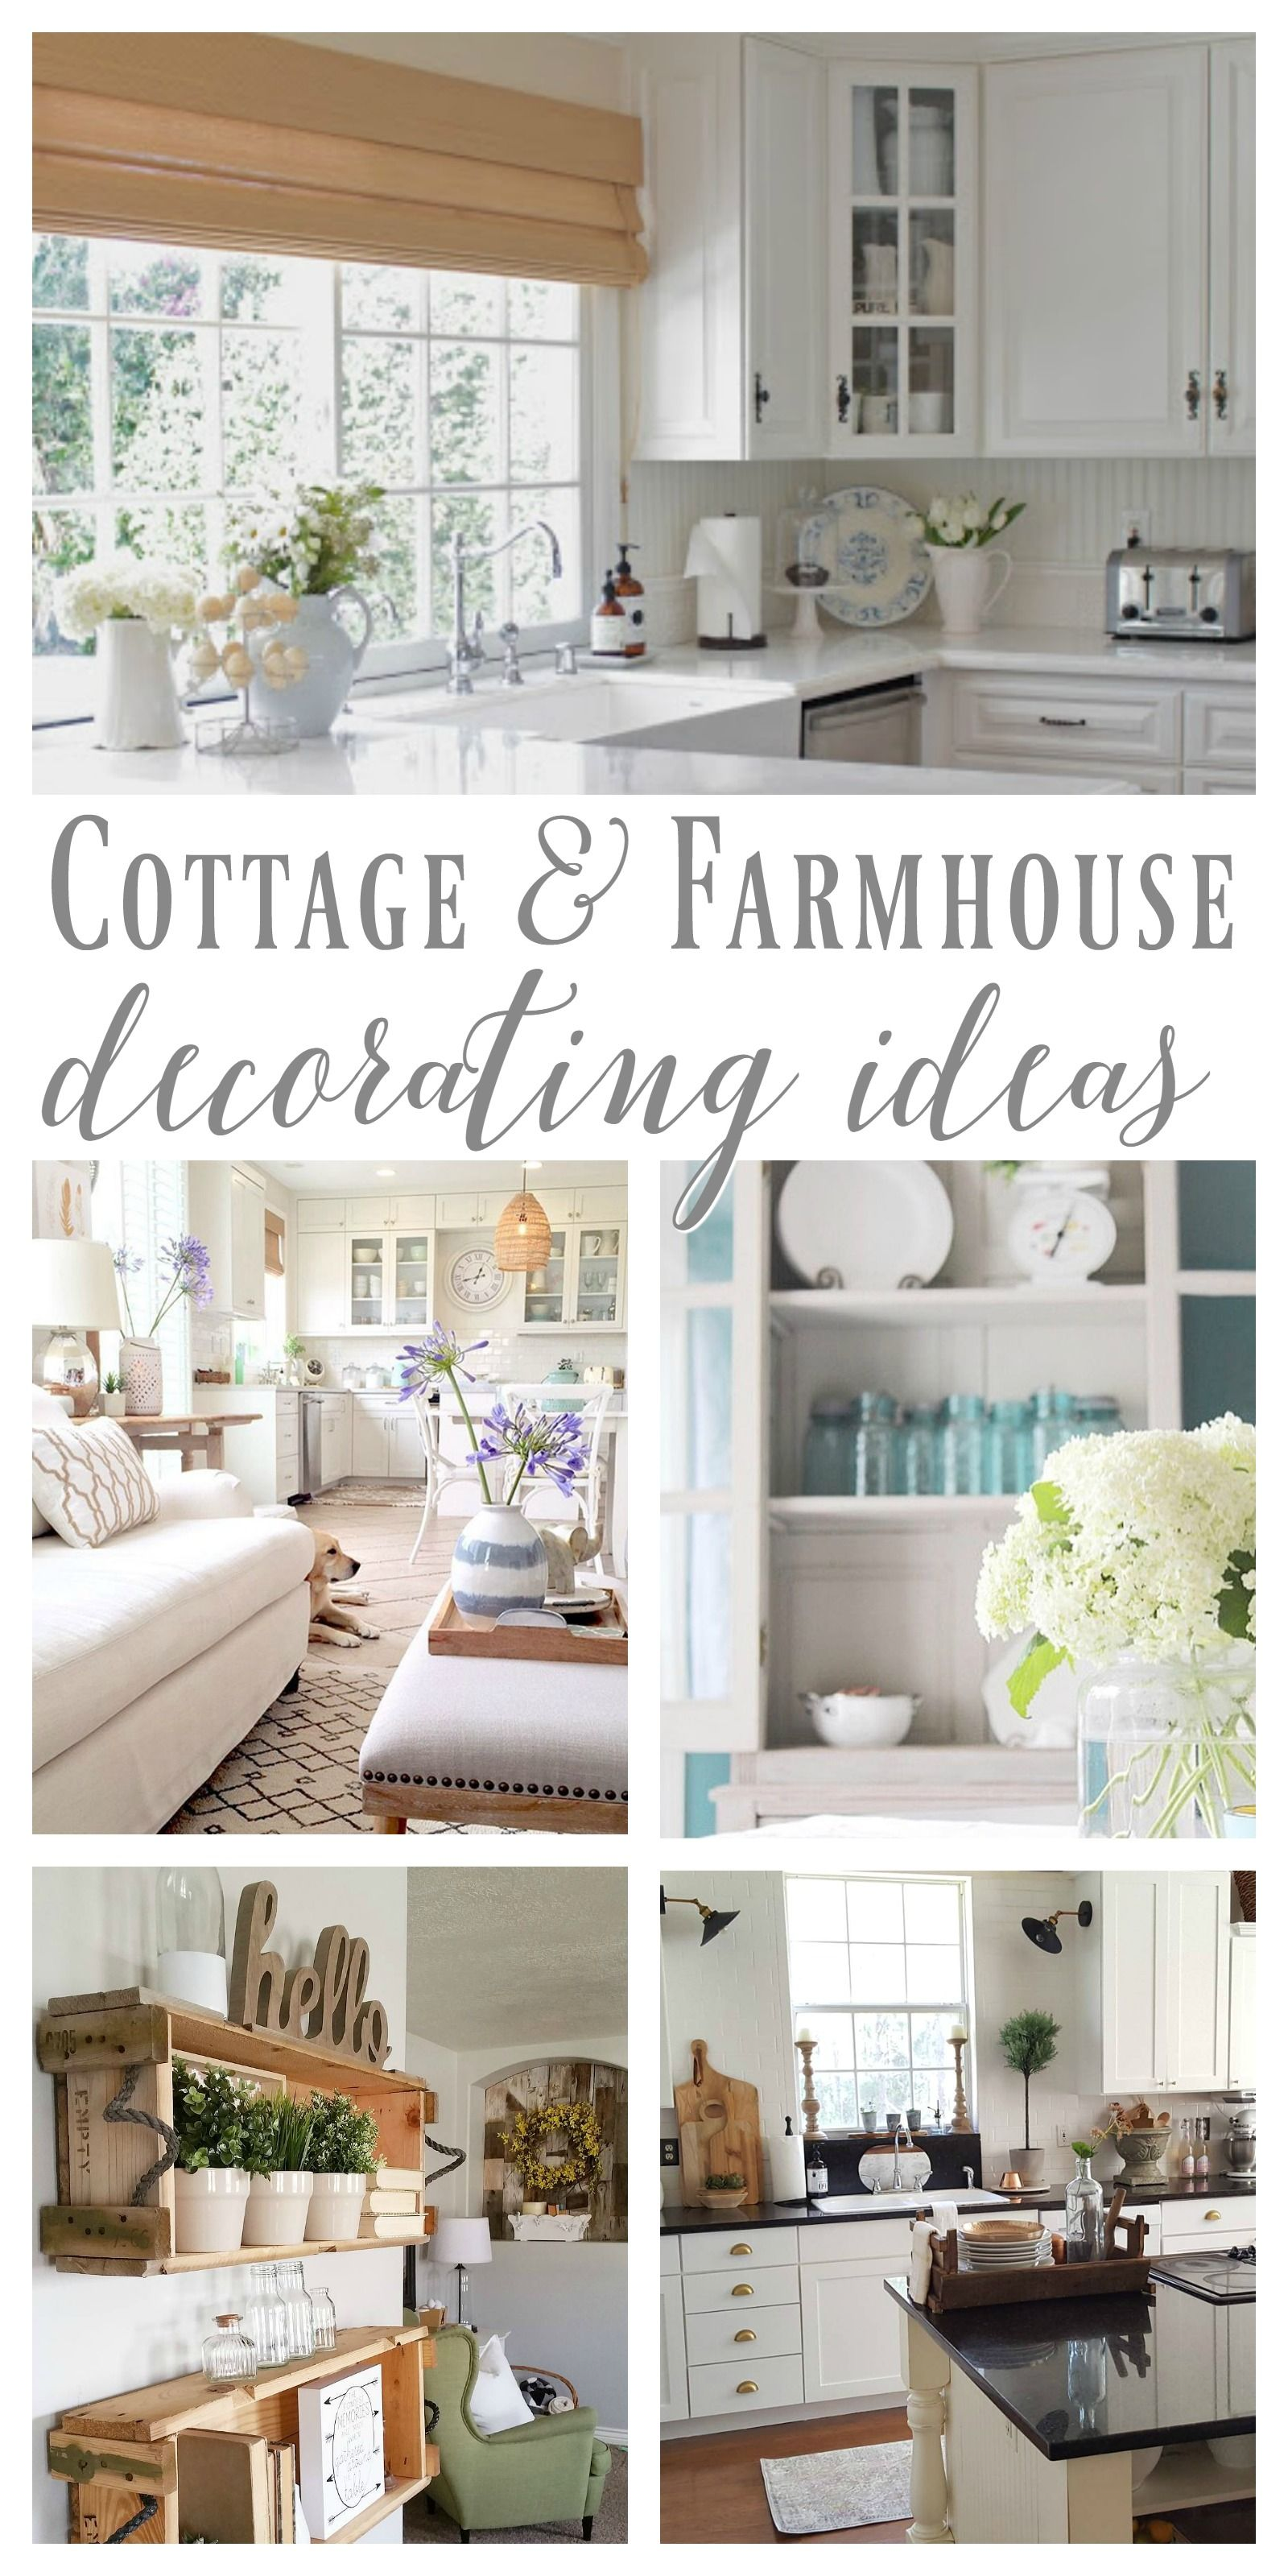 Cottage And Farmhouse Style Decorating Ideas #foxhollowfridayfavs  Foxhollowcottage.com June Features